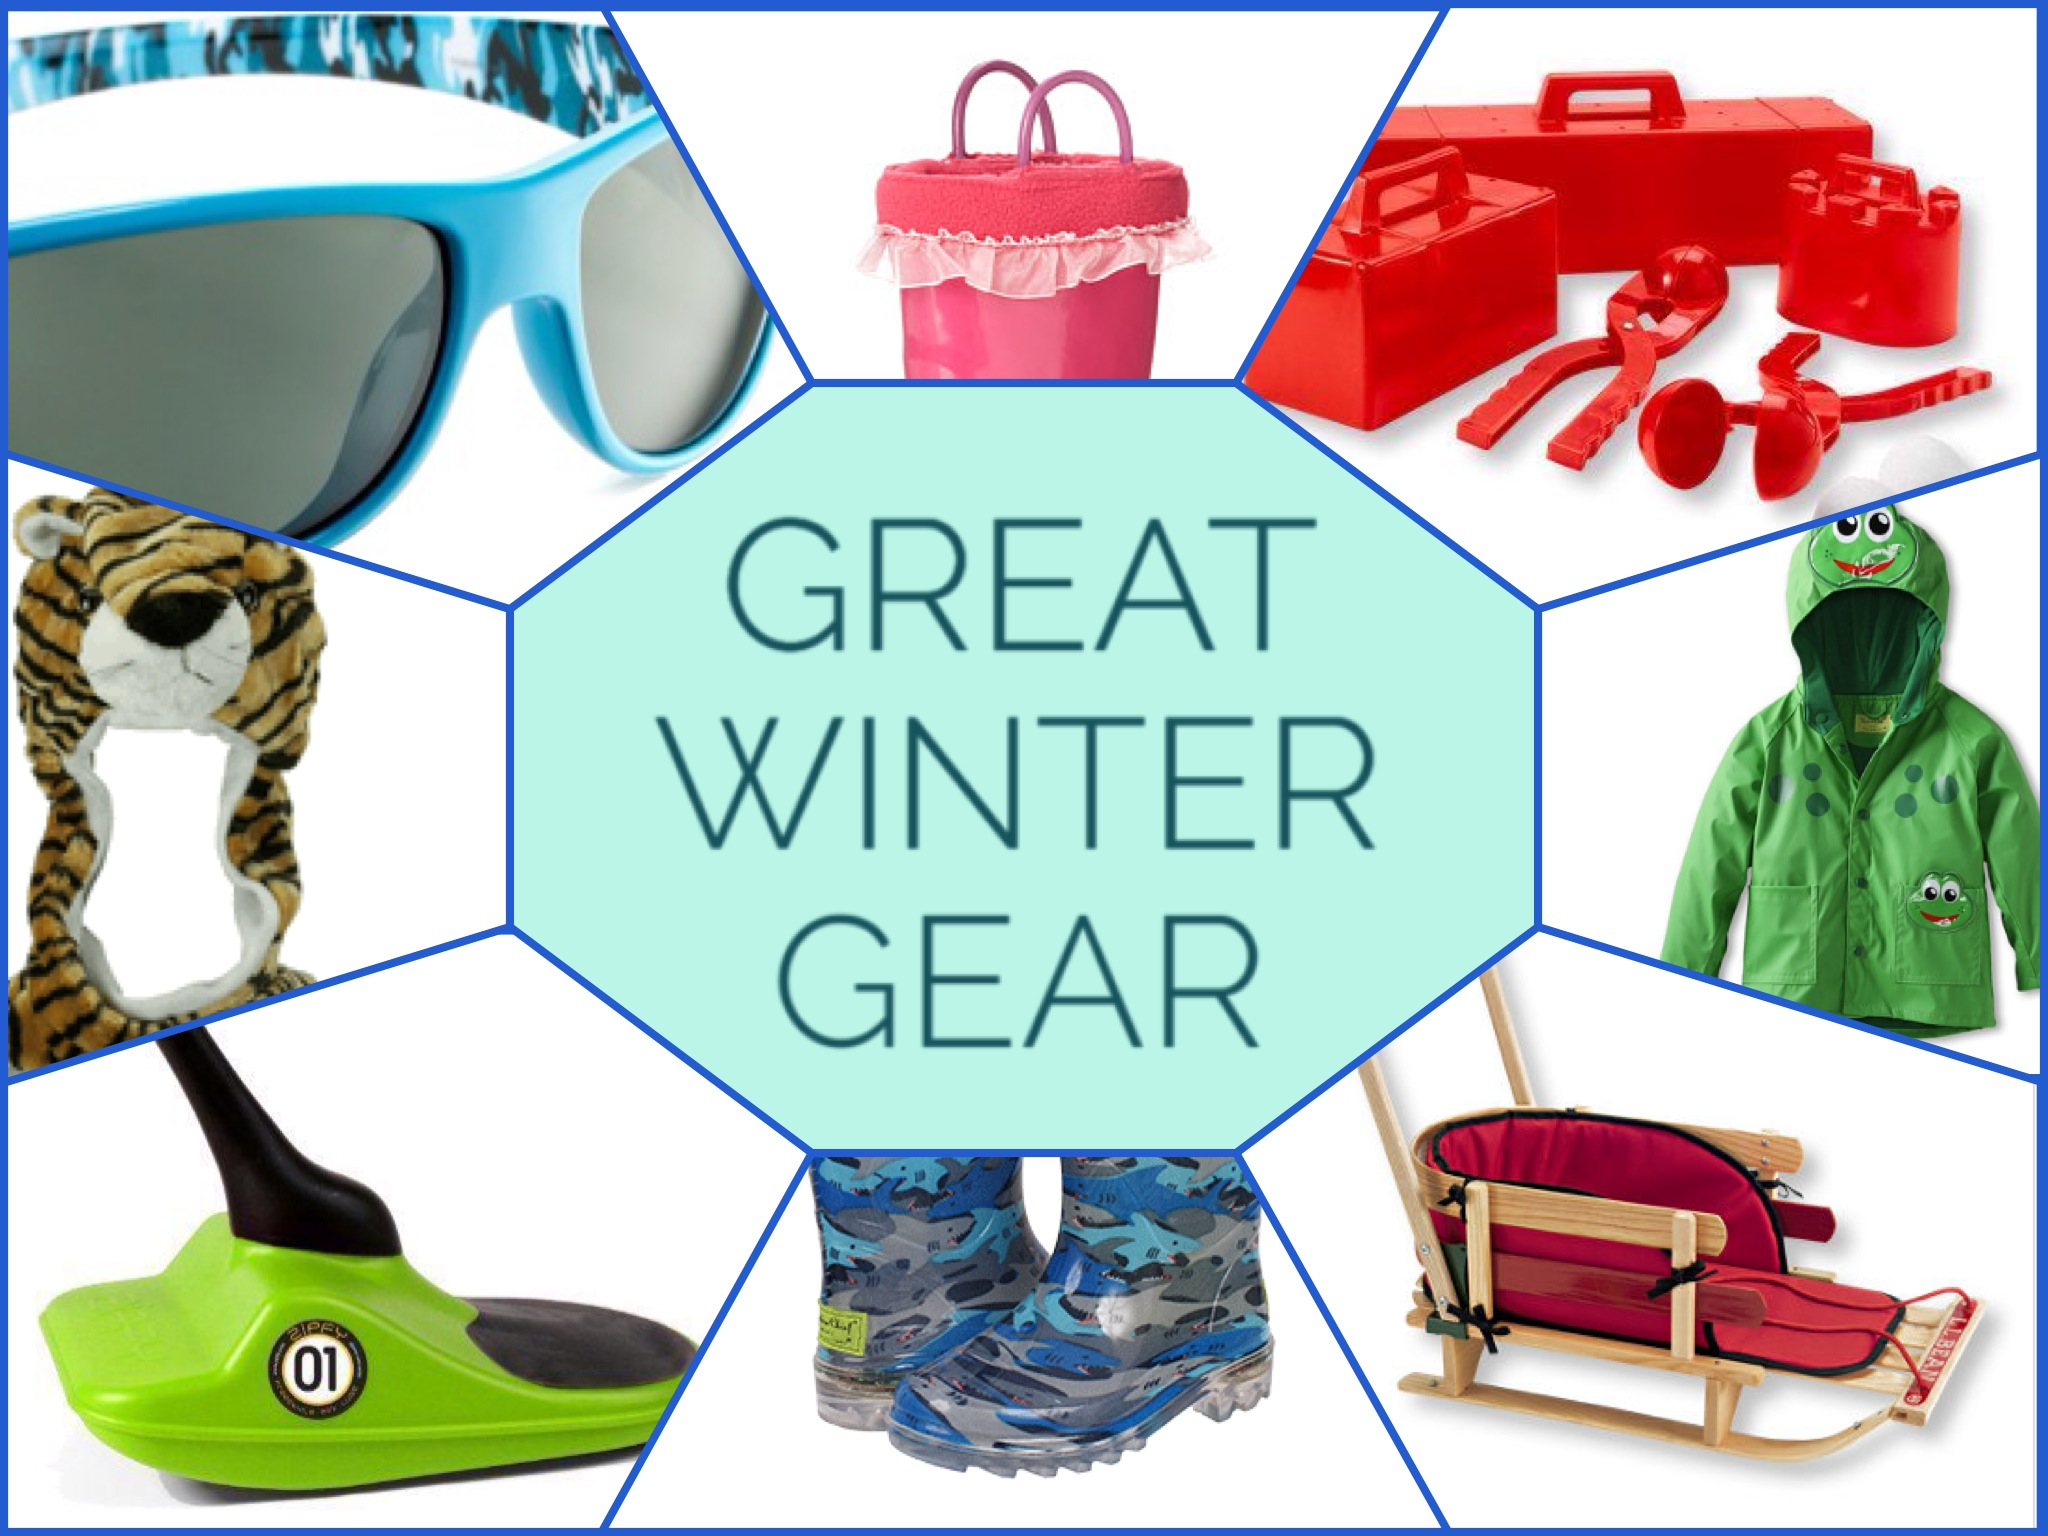 b32d9c61f0ae 16 Great Winter Gear Ideas for Kids